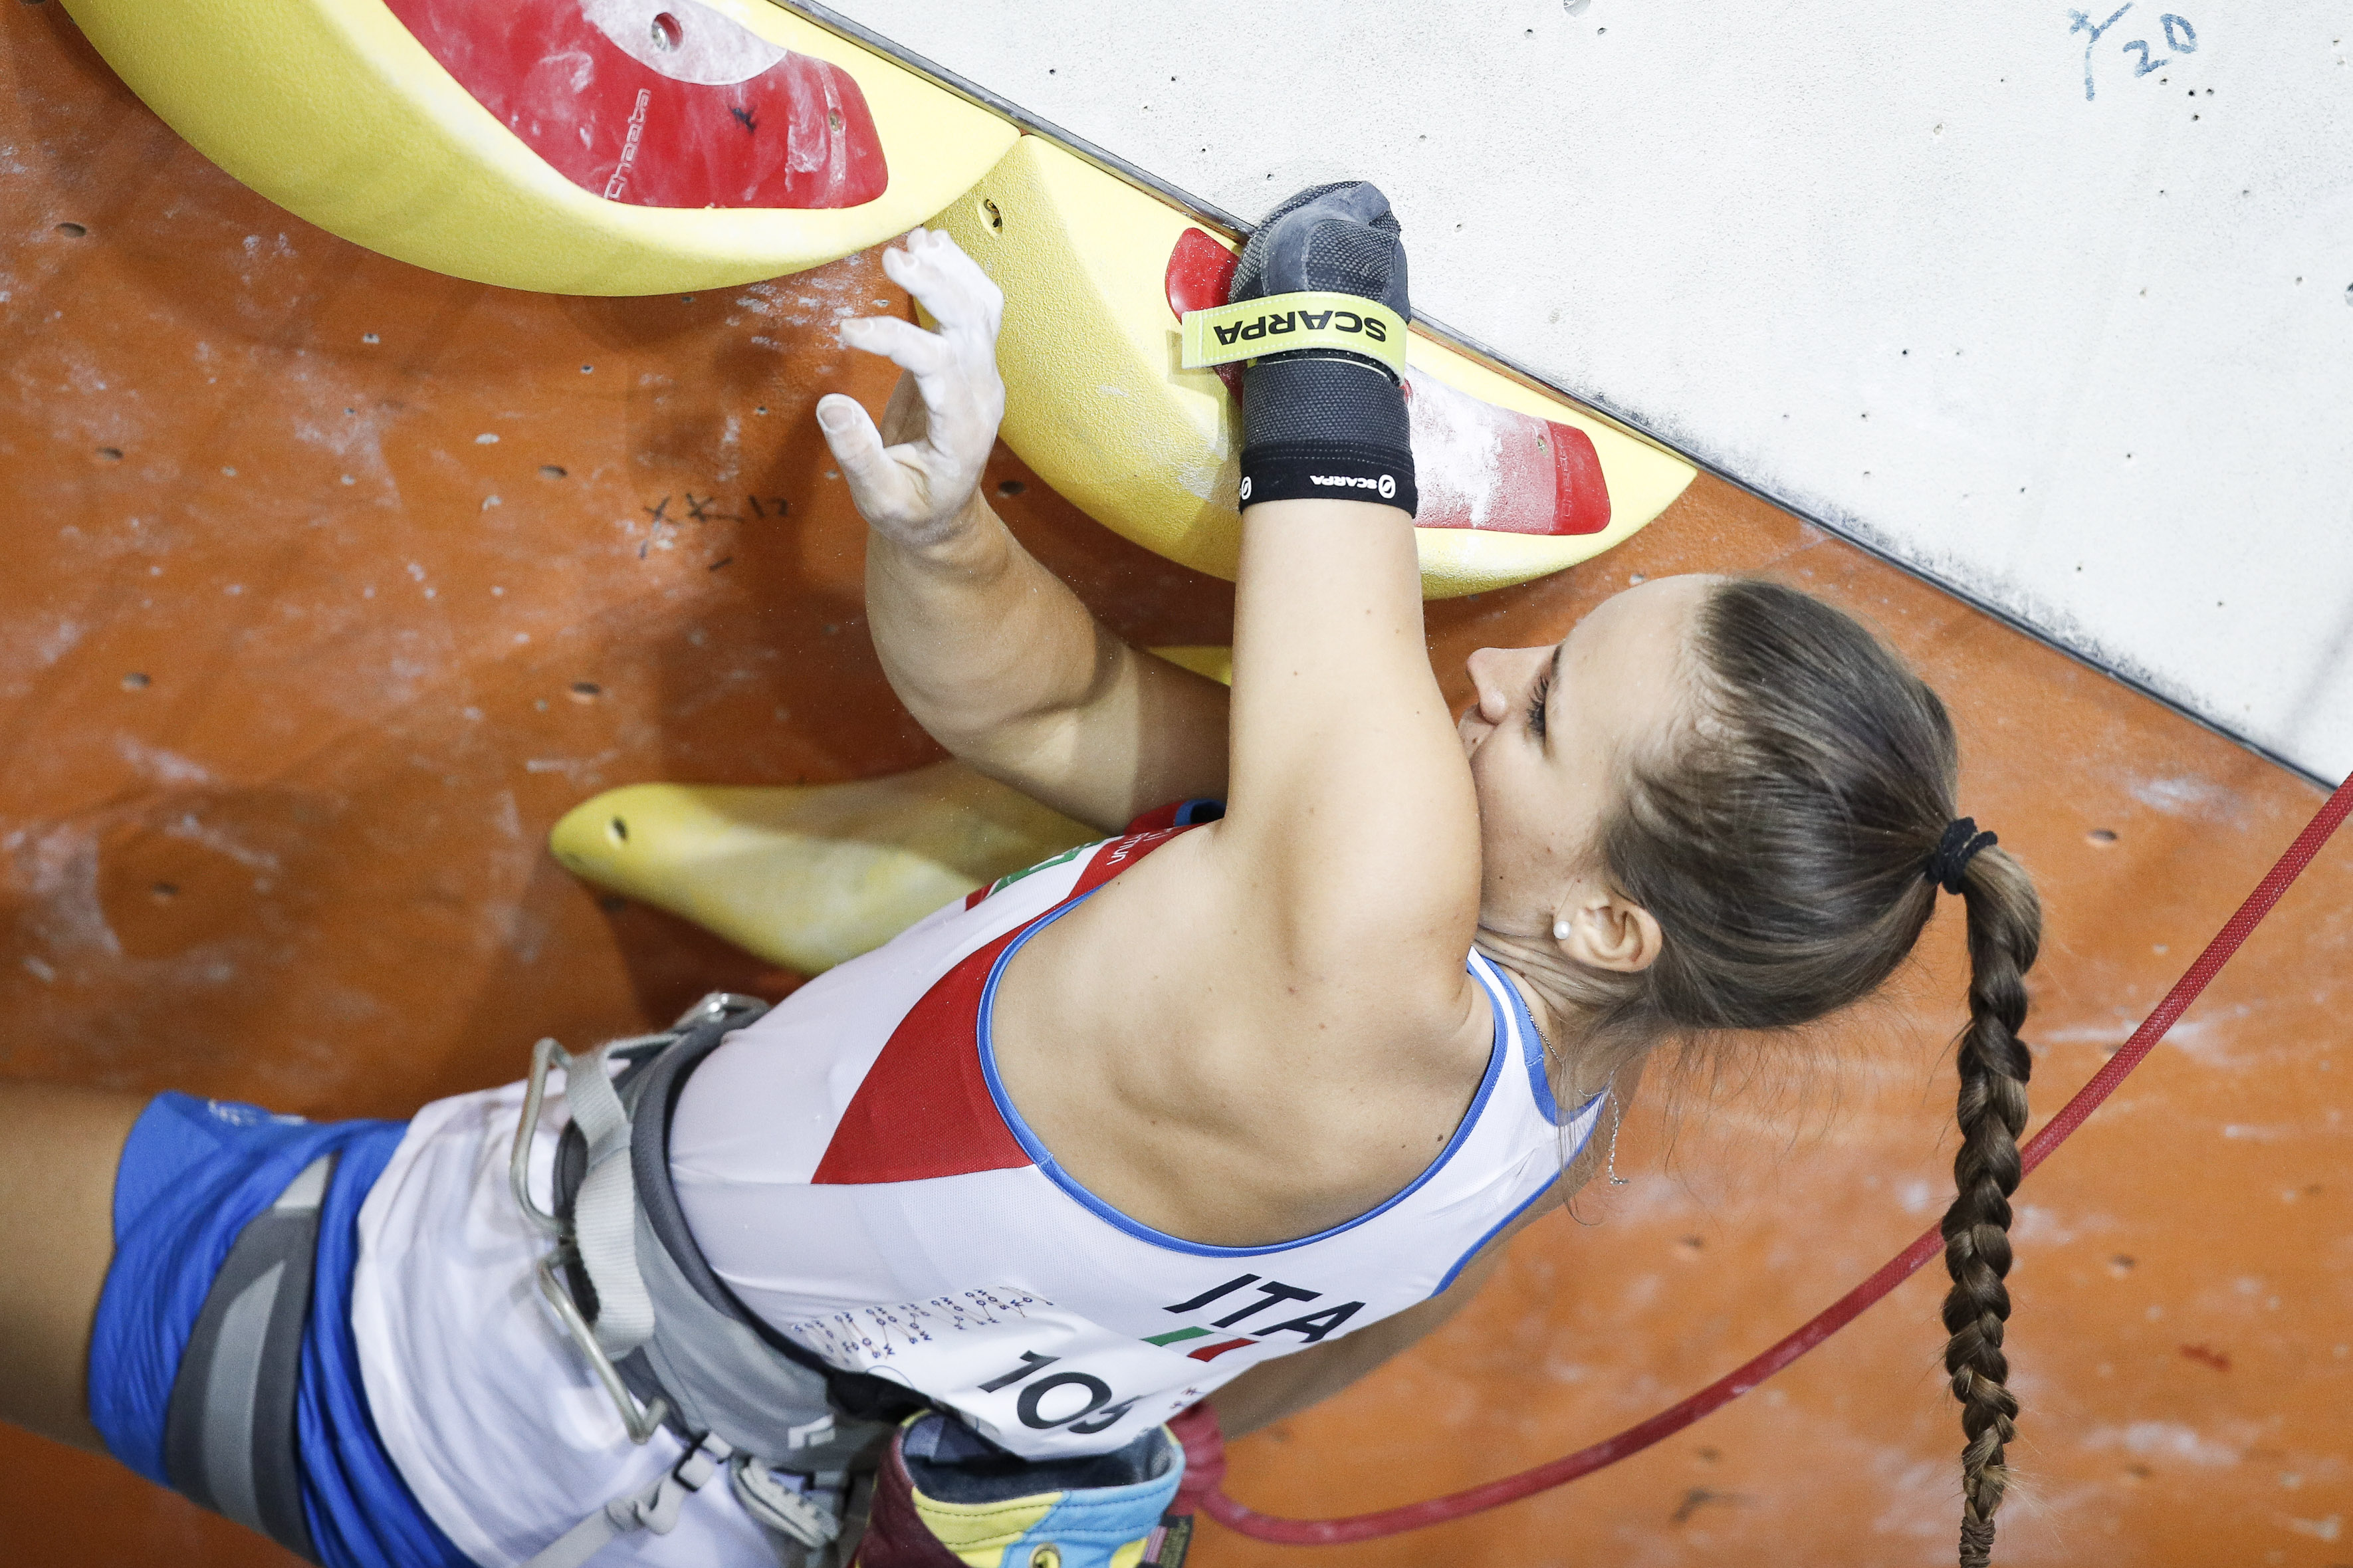 210916 IFSC News Paraclimbing qualifications closed in Moscow